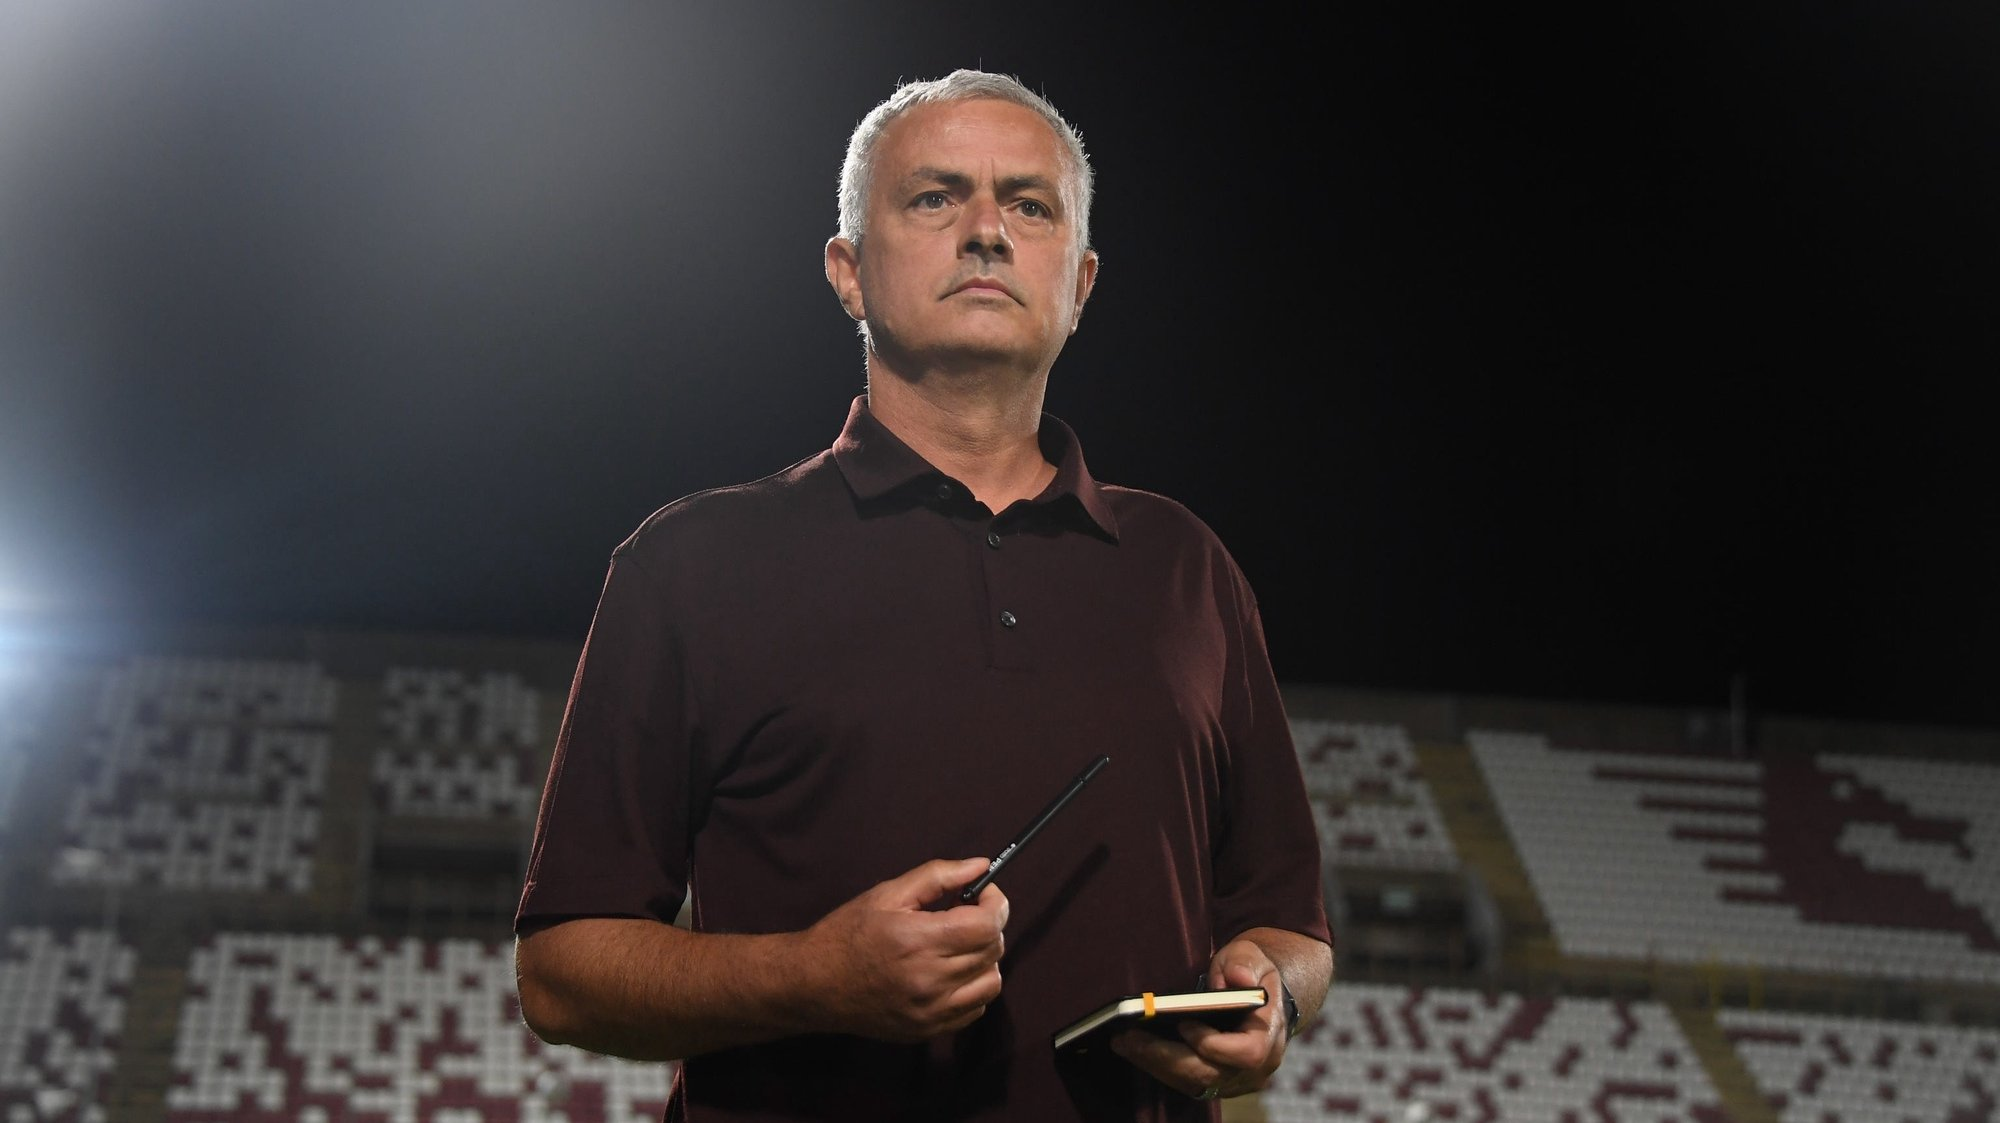 epa09436208 Roma's coach Jose Mourinho prior to the Italian Serie A soccer match between US Salernitana and AS Roma at the Arechi stadium in Salerno, Italy, 29 August 2021.  EPA/MASSIMO PICA